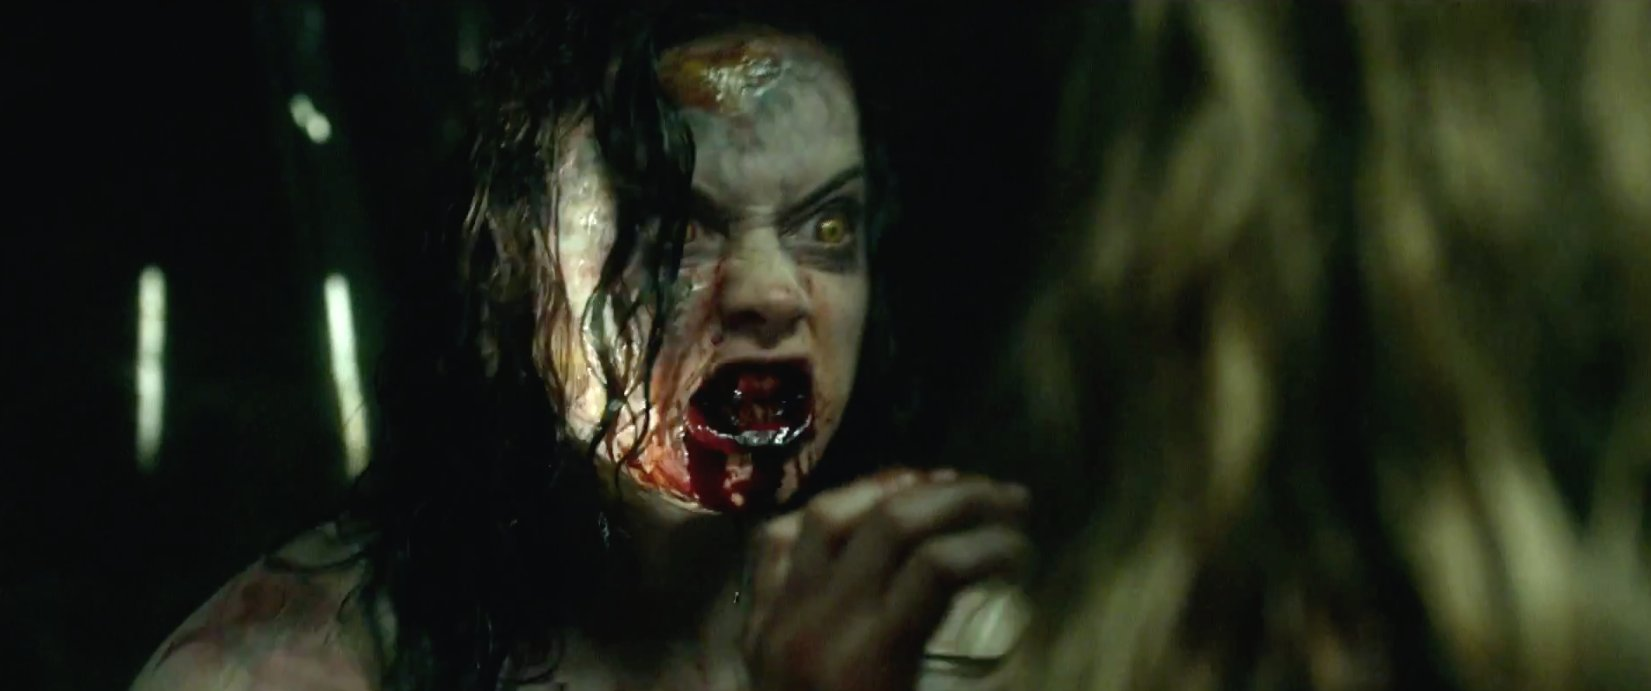 evildead-caption